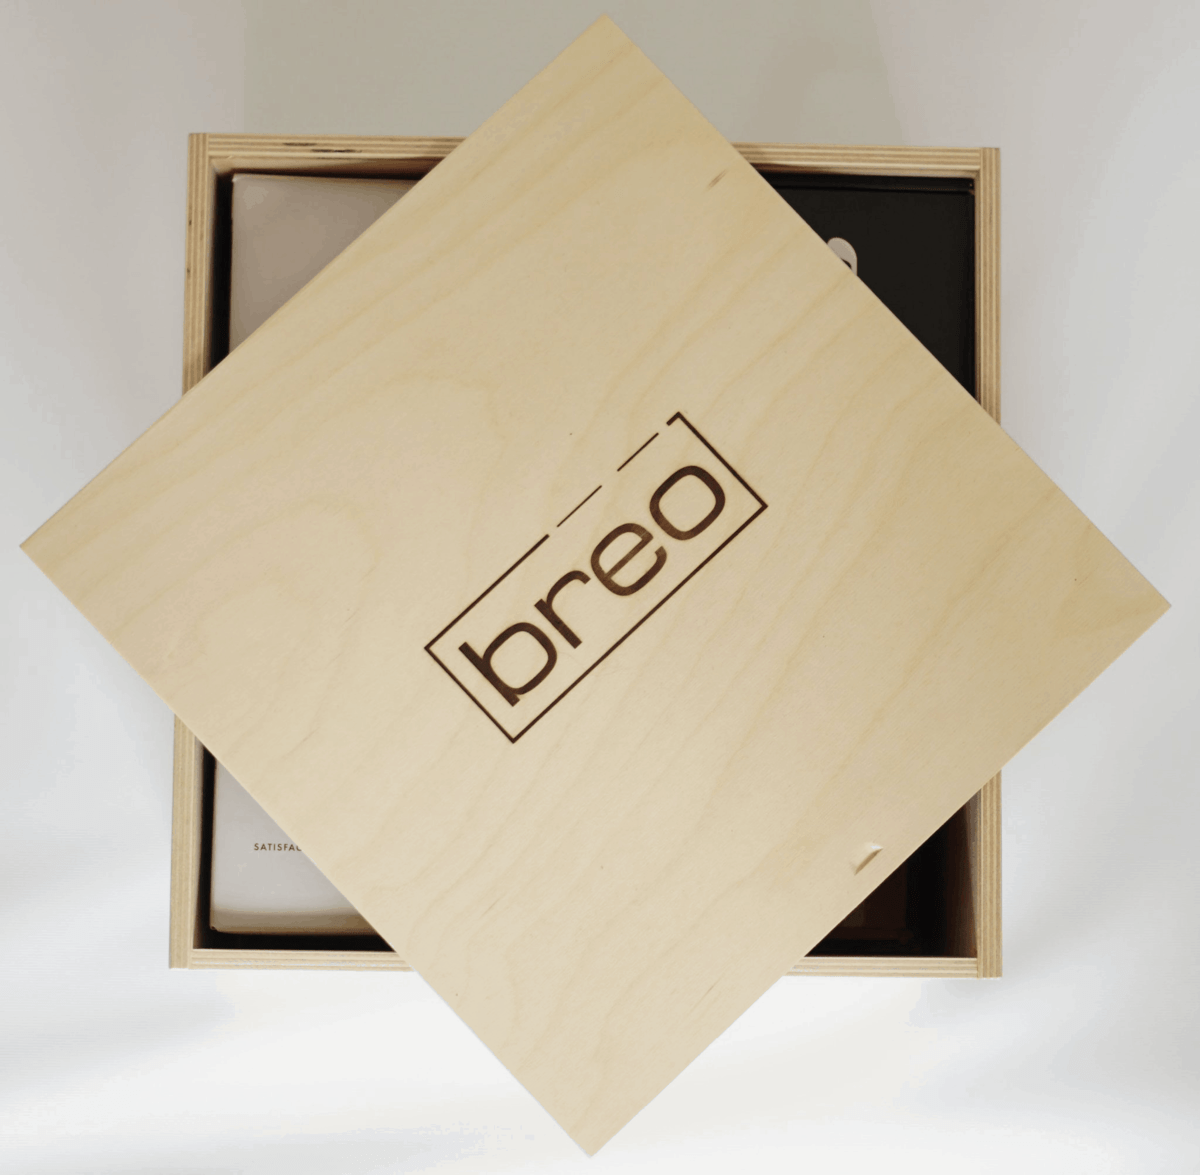 Breo Box $25 Off Coupon Code